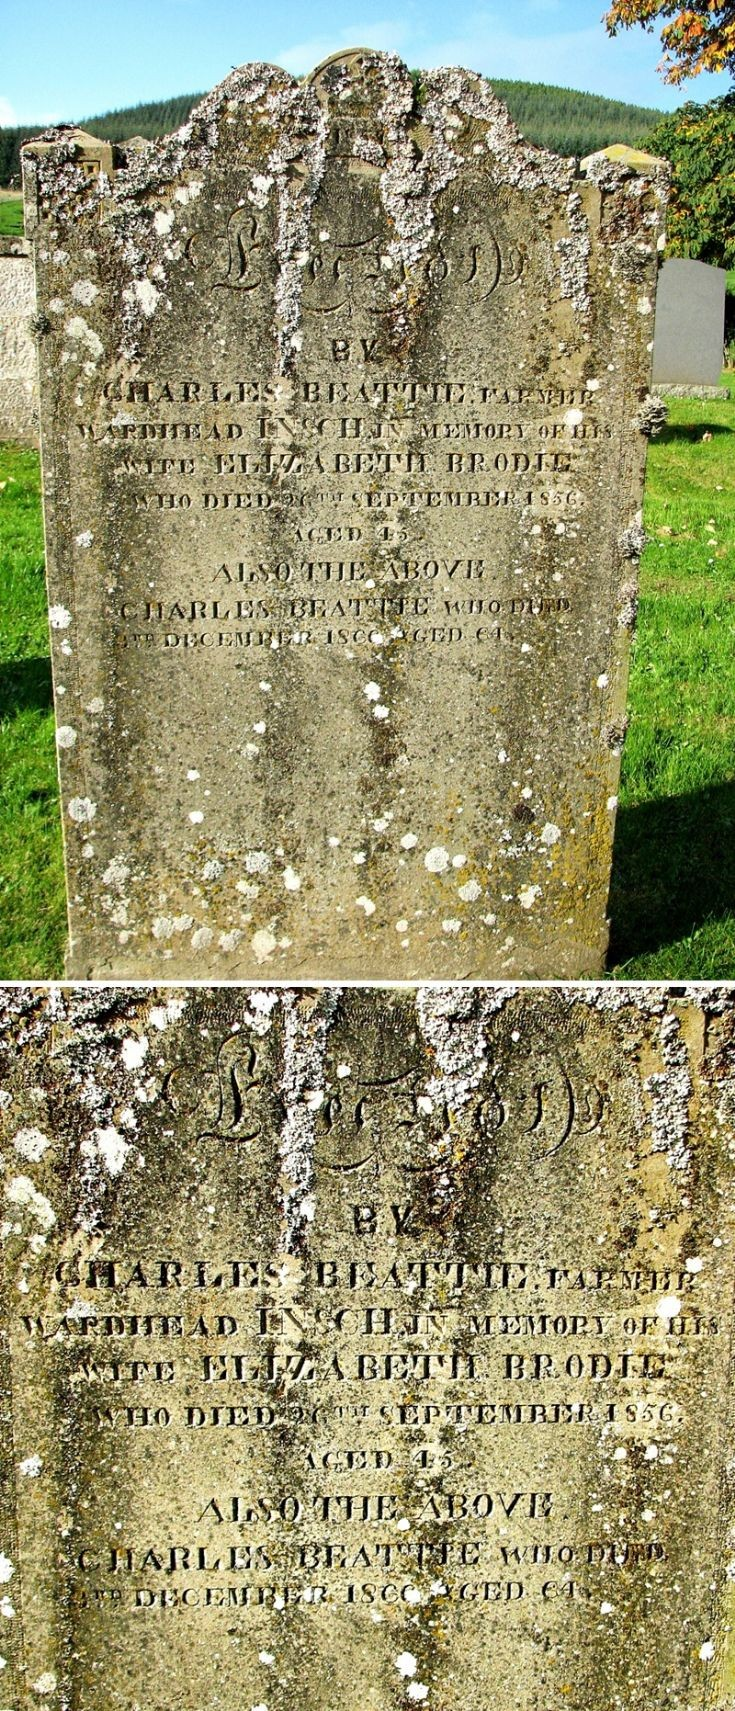 109 Grave No 146 Charles Beattie